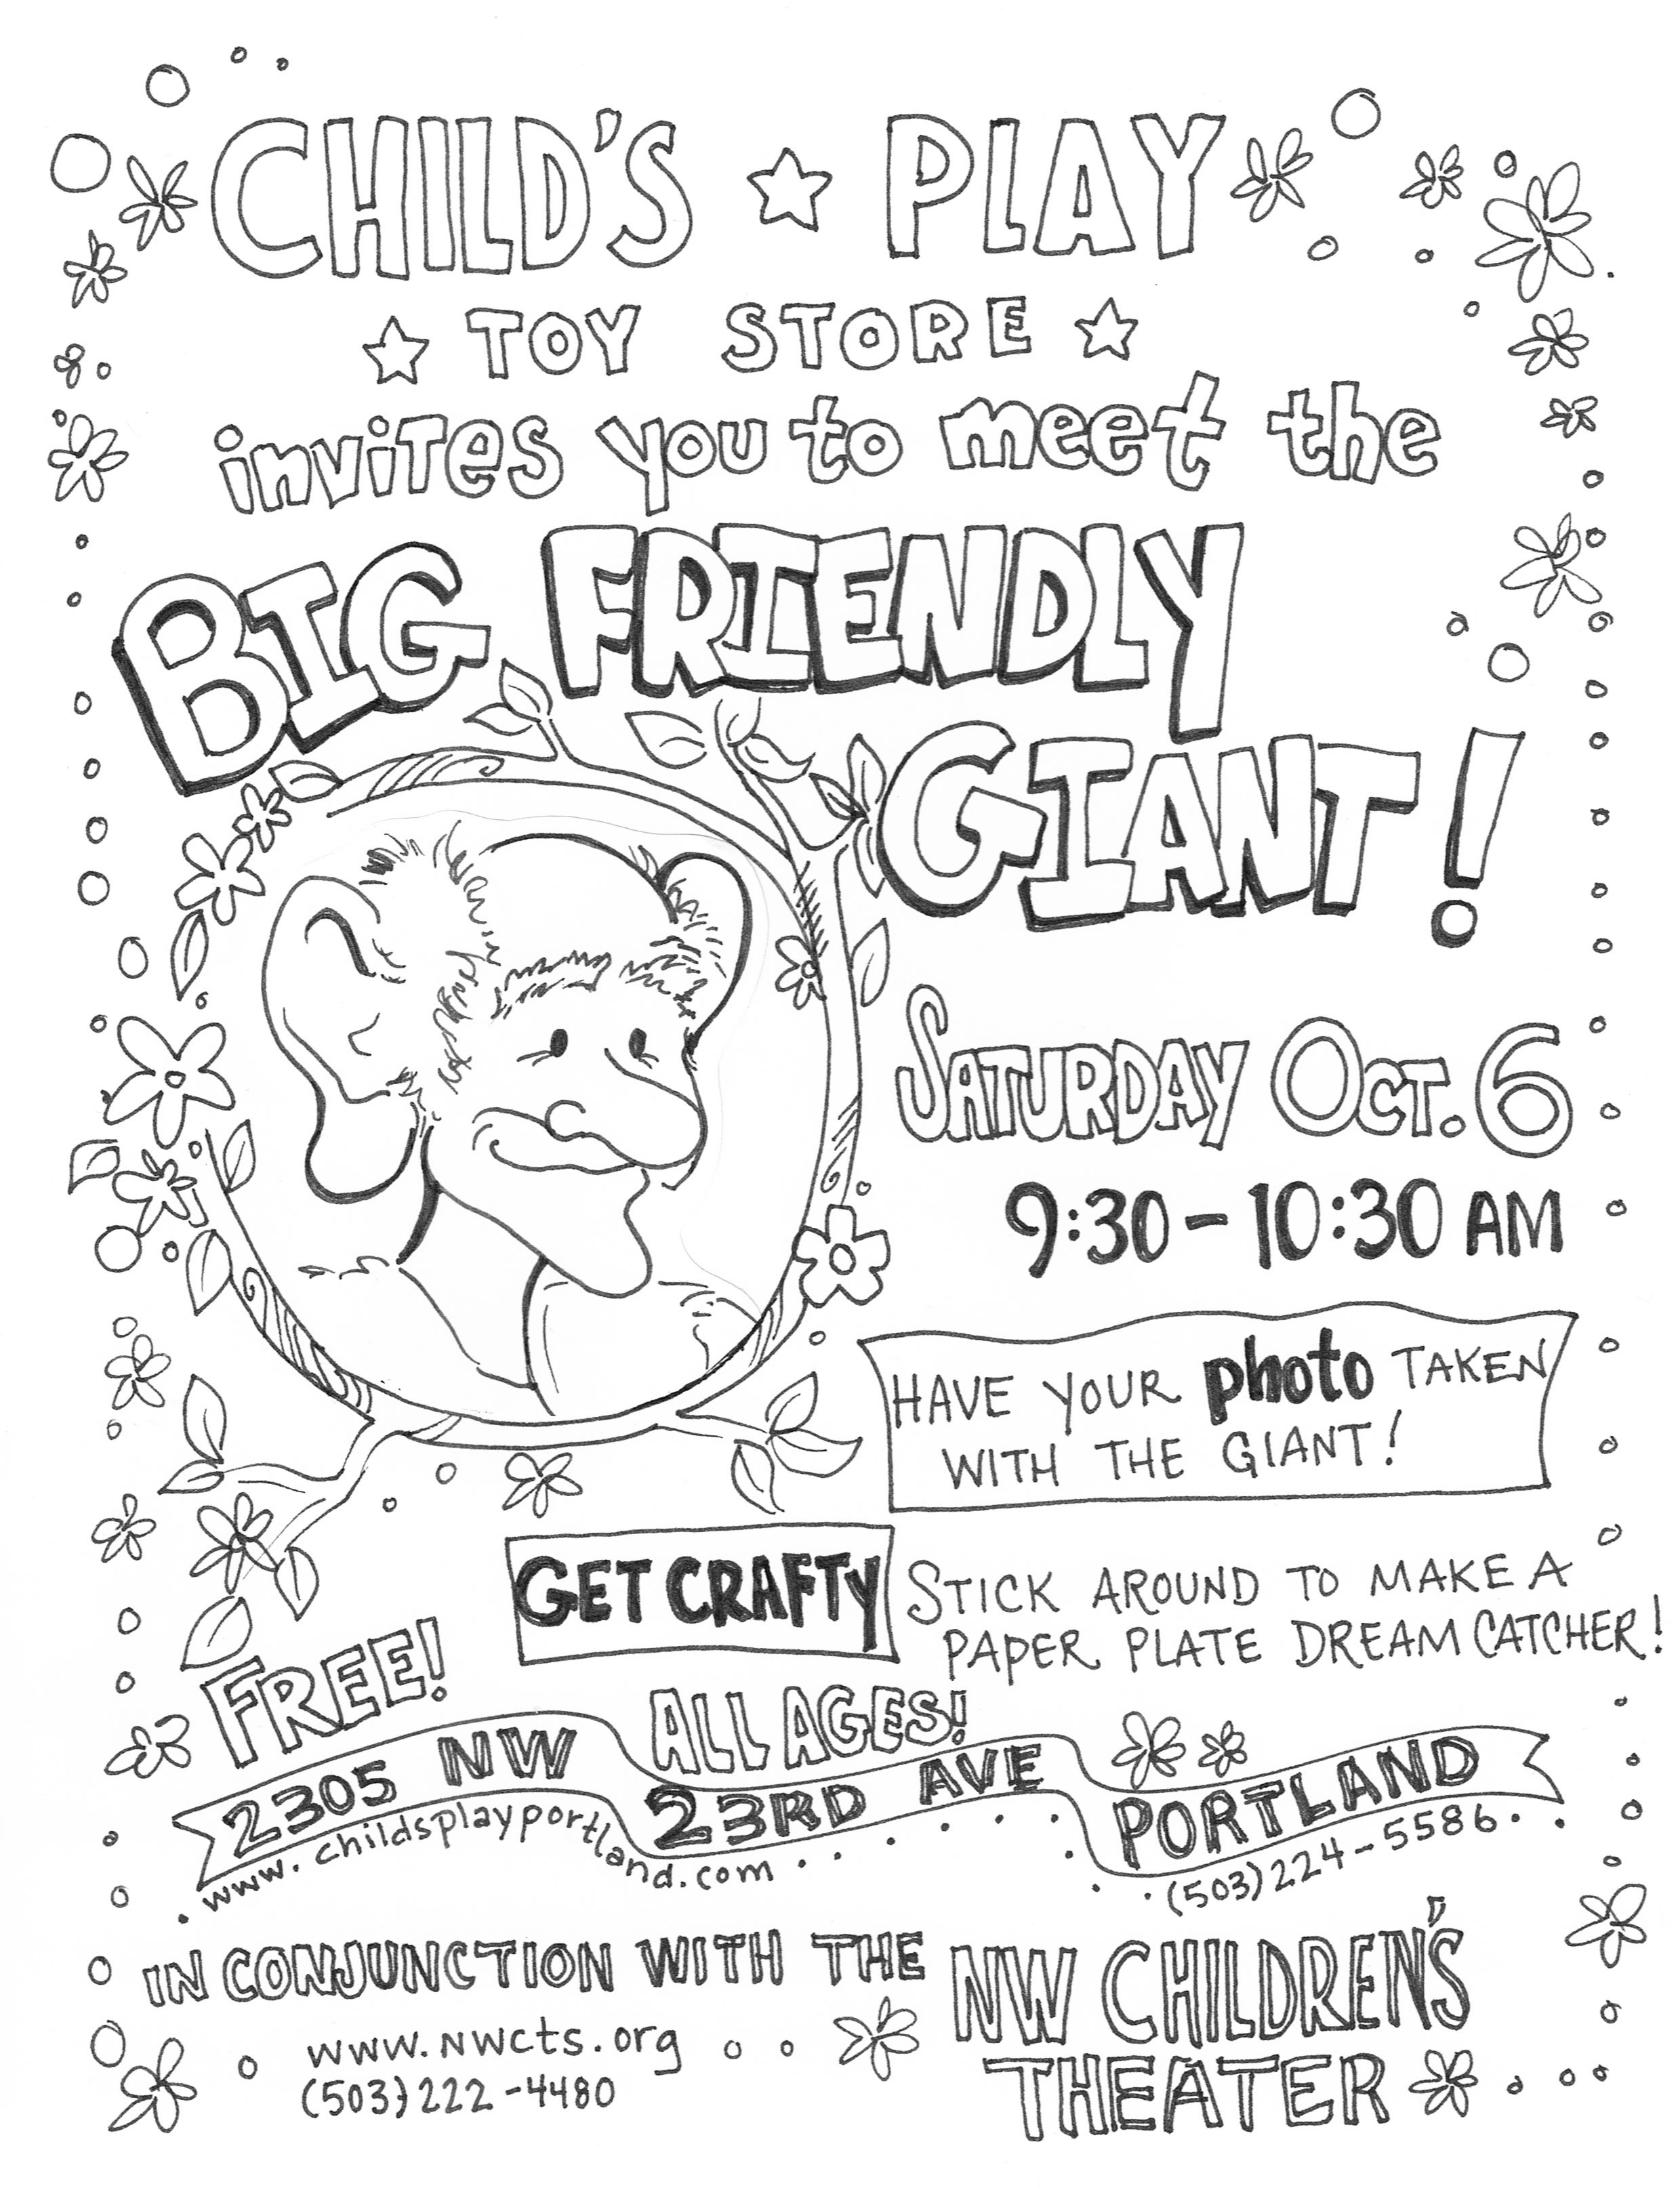 NW_Children's_Theater_The_Big_Friendly_Giant